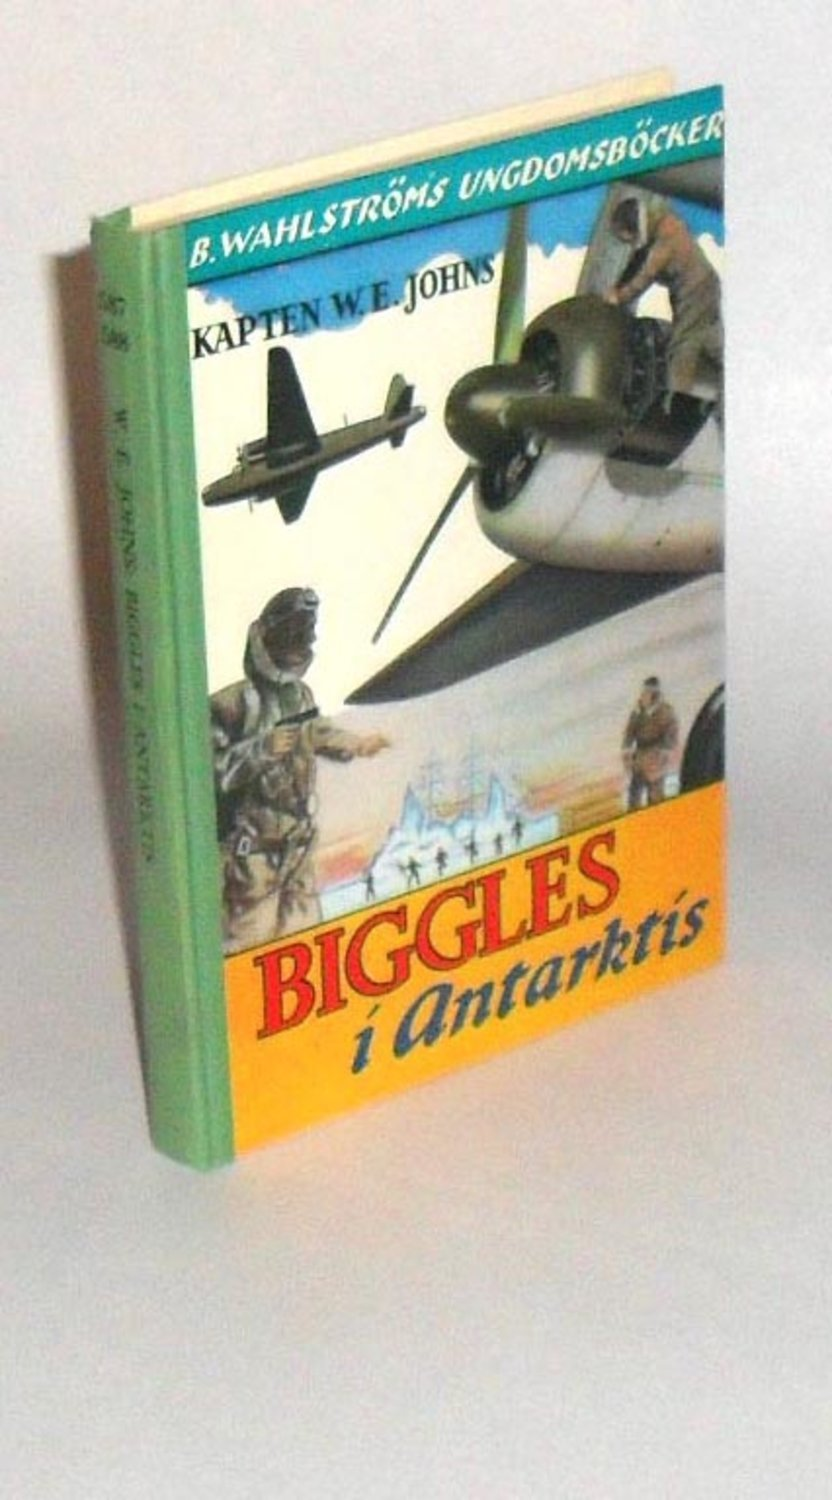 William Earl Johns : B W U ;Biggles i Antarktis